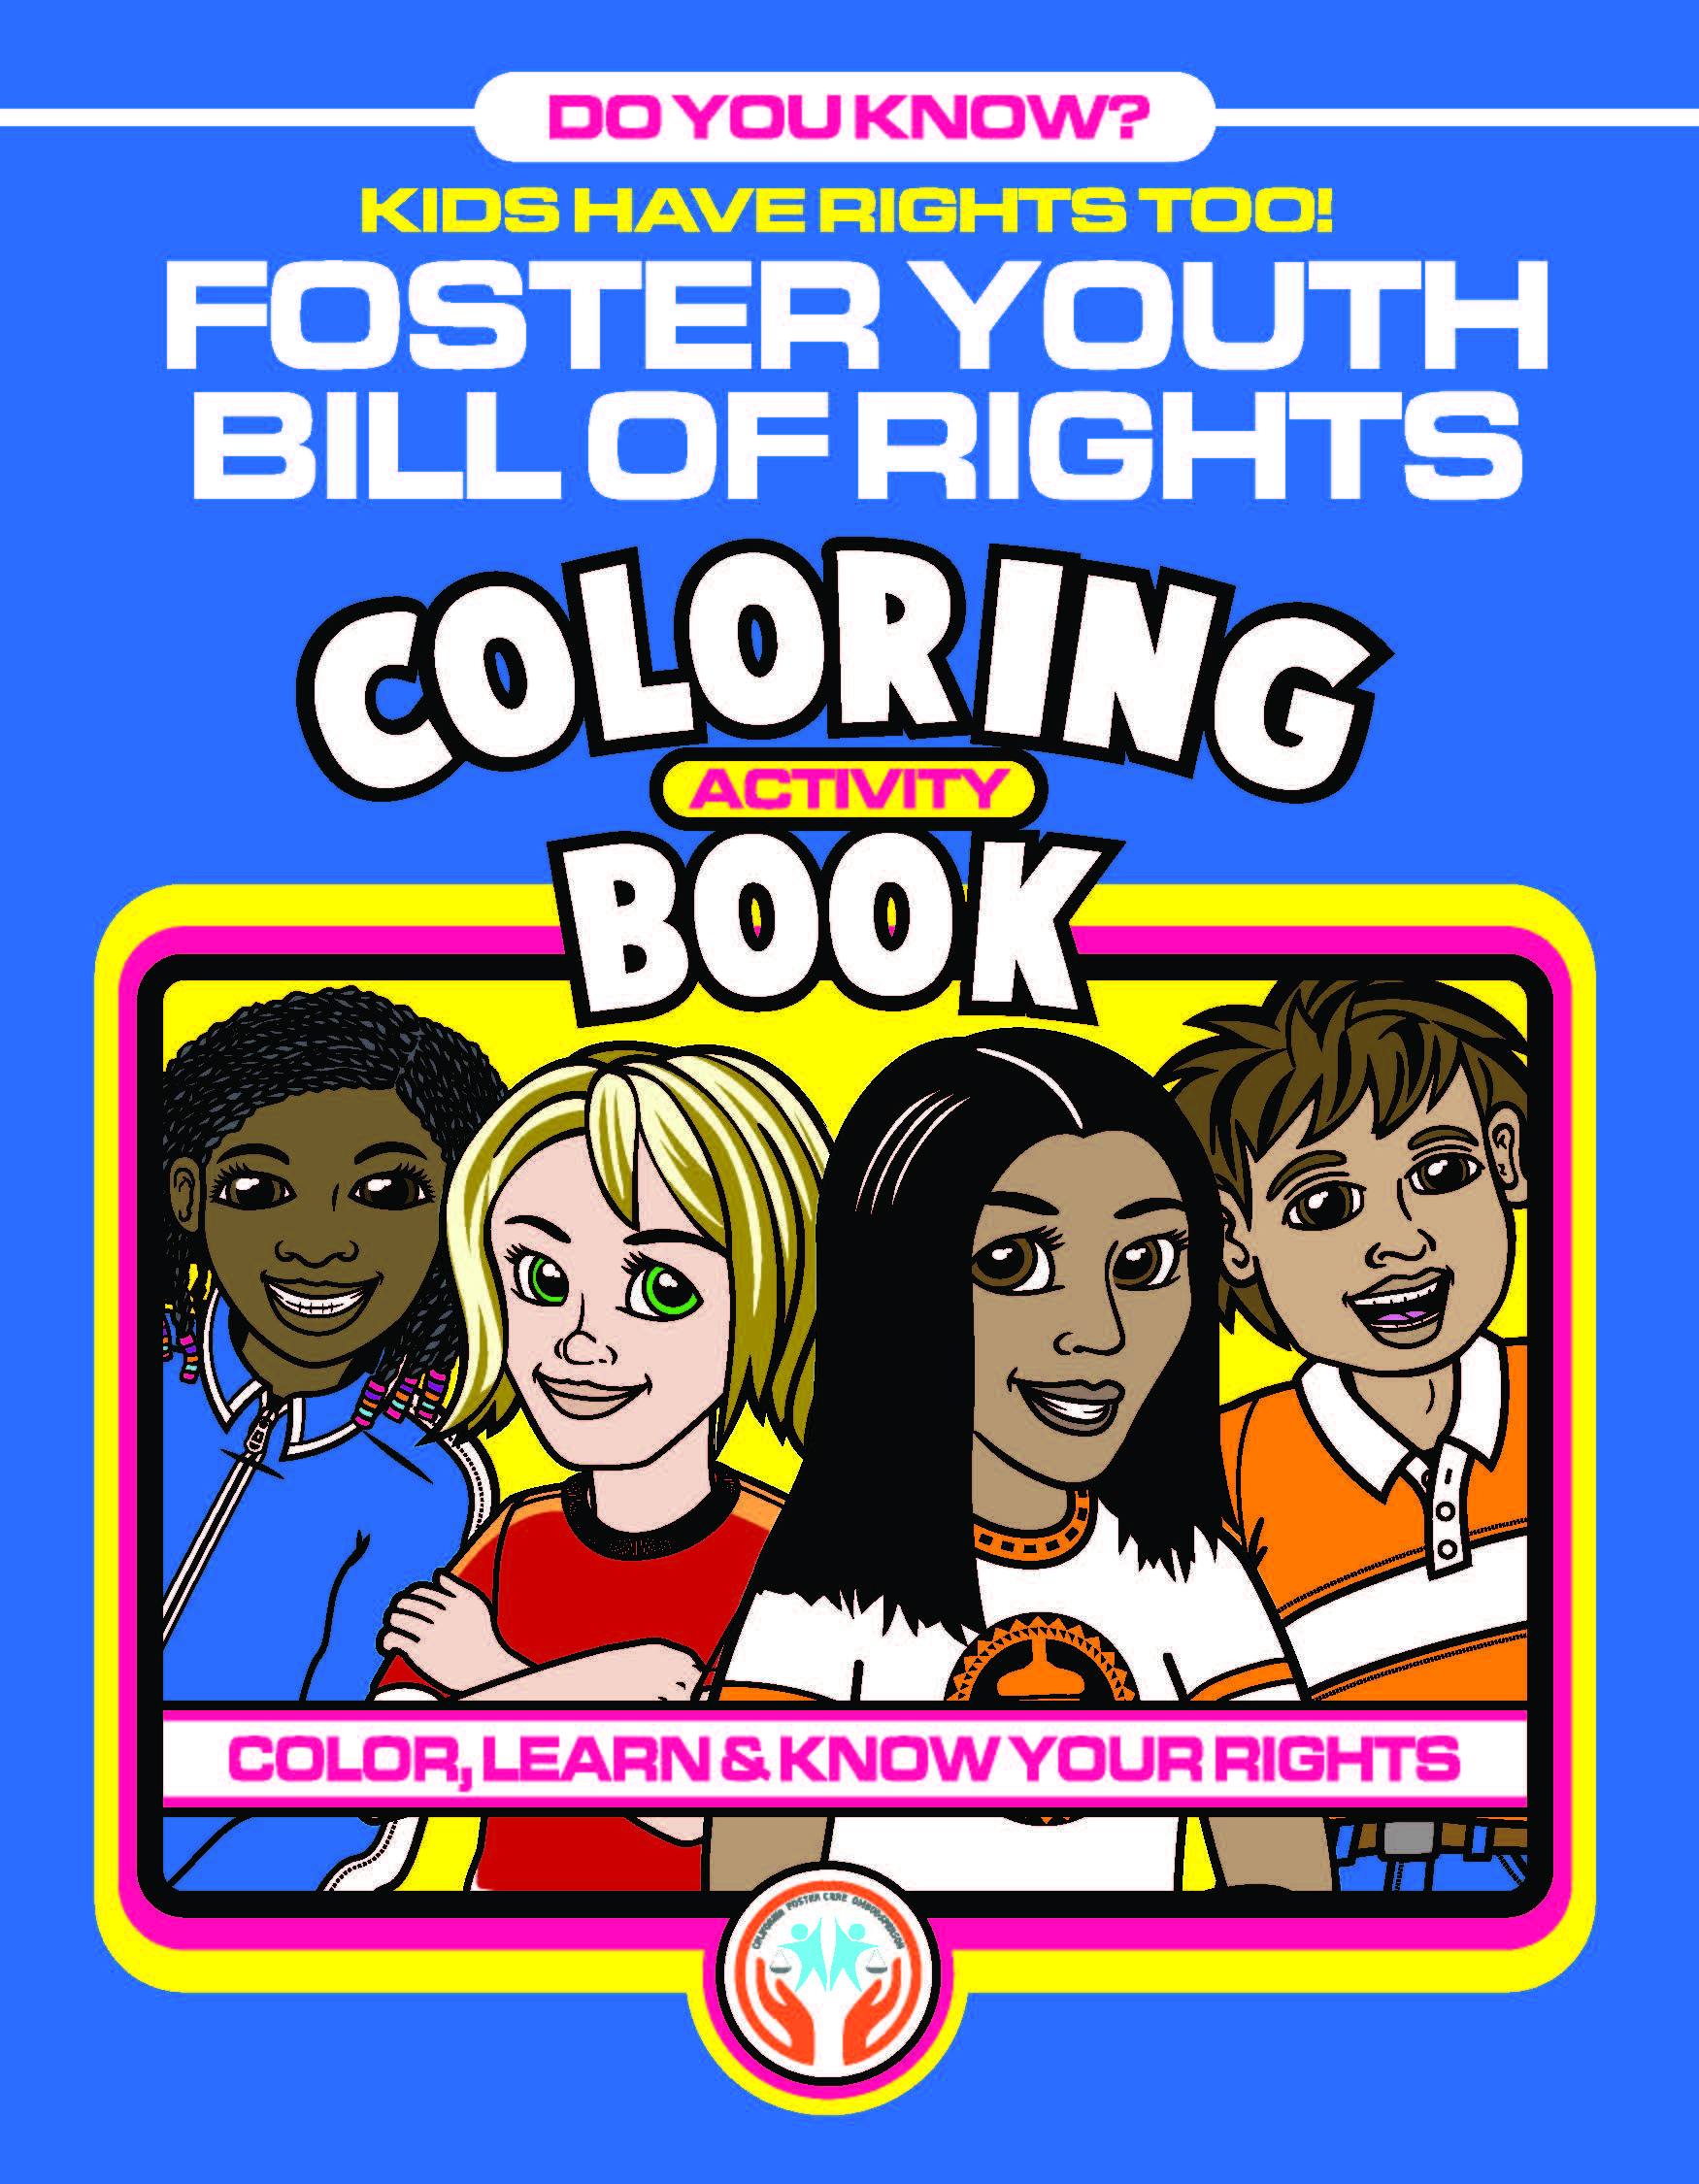 Image of the Foster Youth Bill of Rights Coloring Book